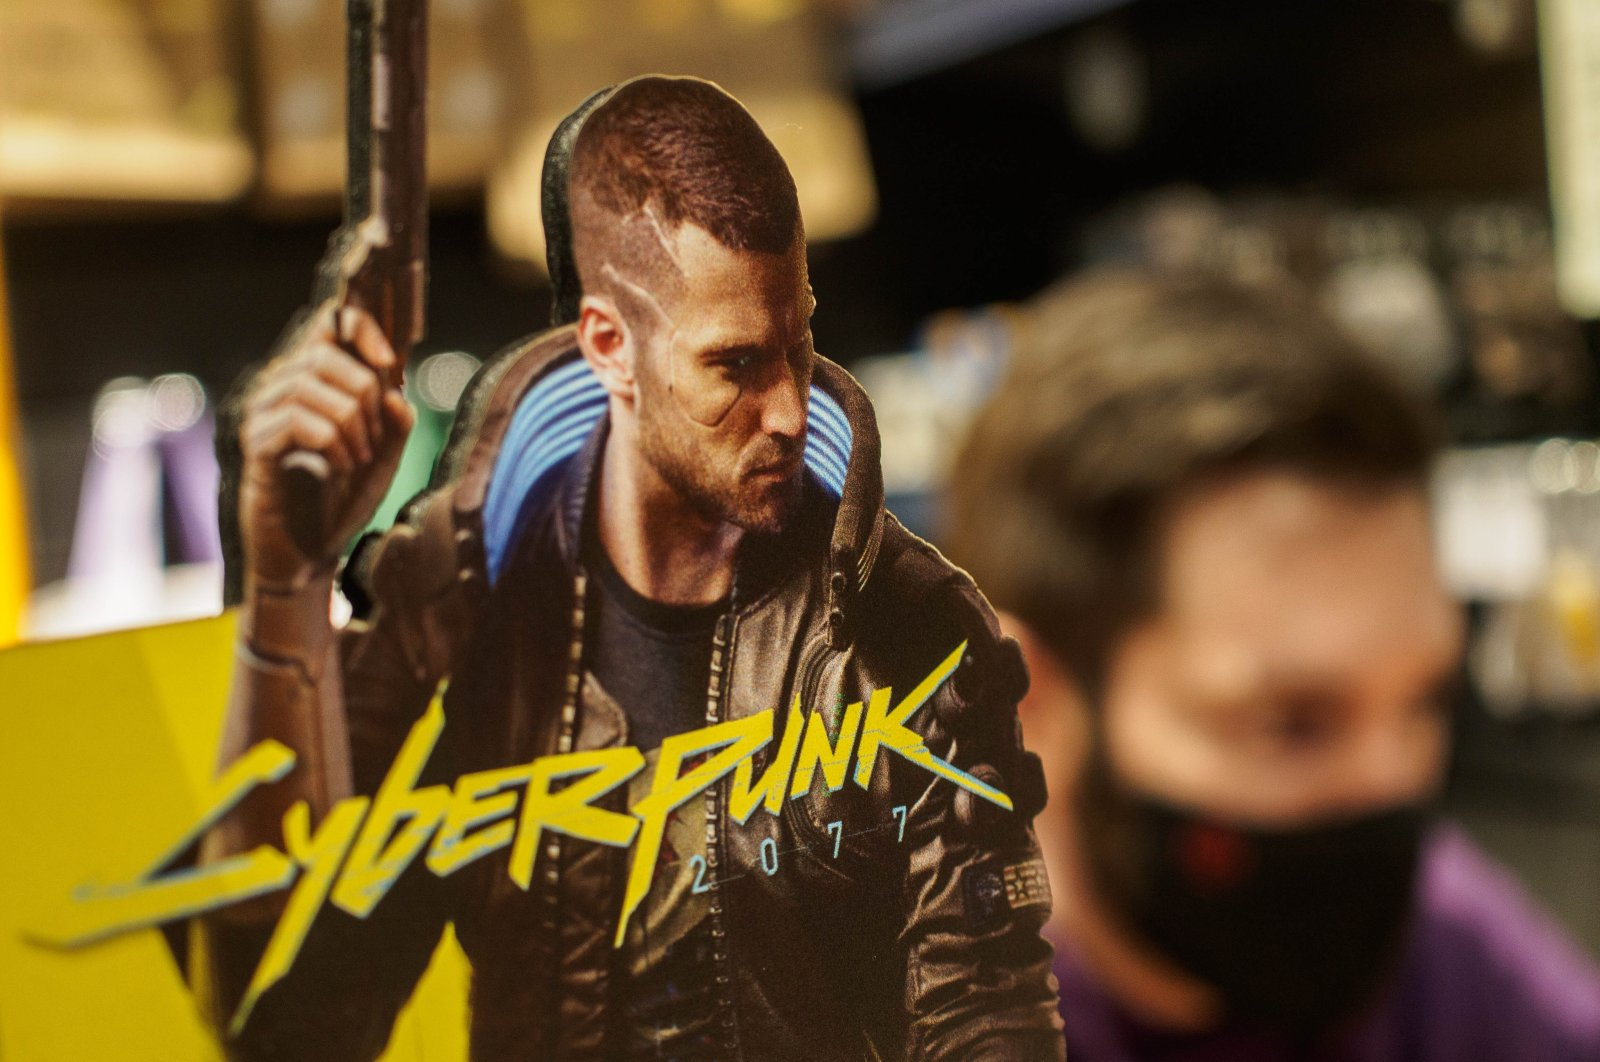 A promo of Cyberpunk 2077, the most anticipated game of 2020, is seen at the entrance to a video game store in Moscow, Russia, Dec. 10, 2020. (Photo by SOPA Images/Sipa USA via Reuters)